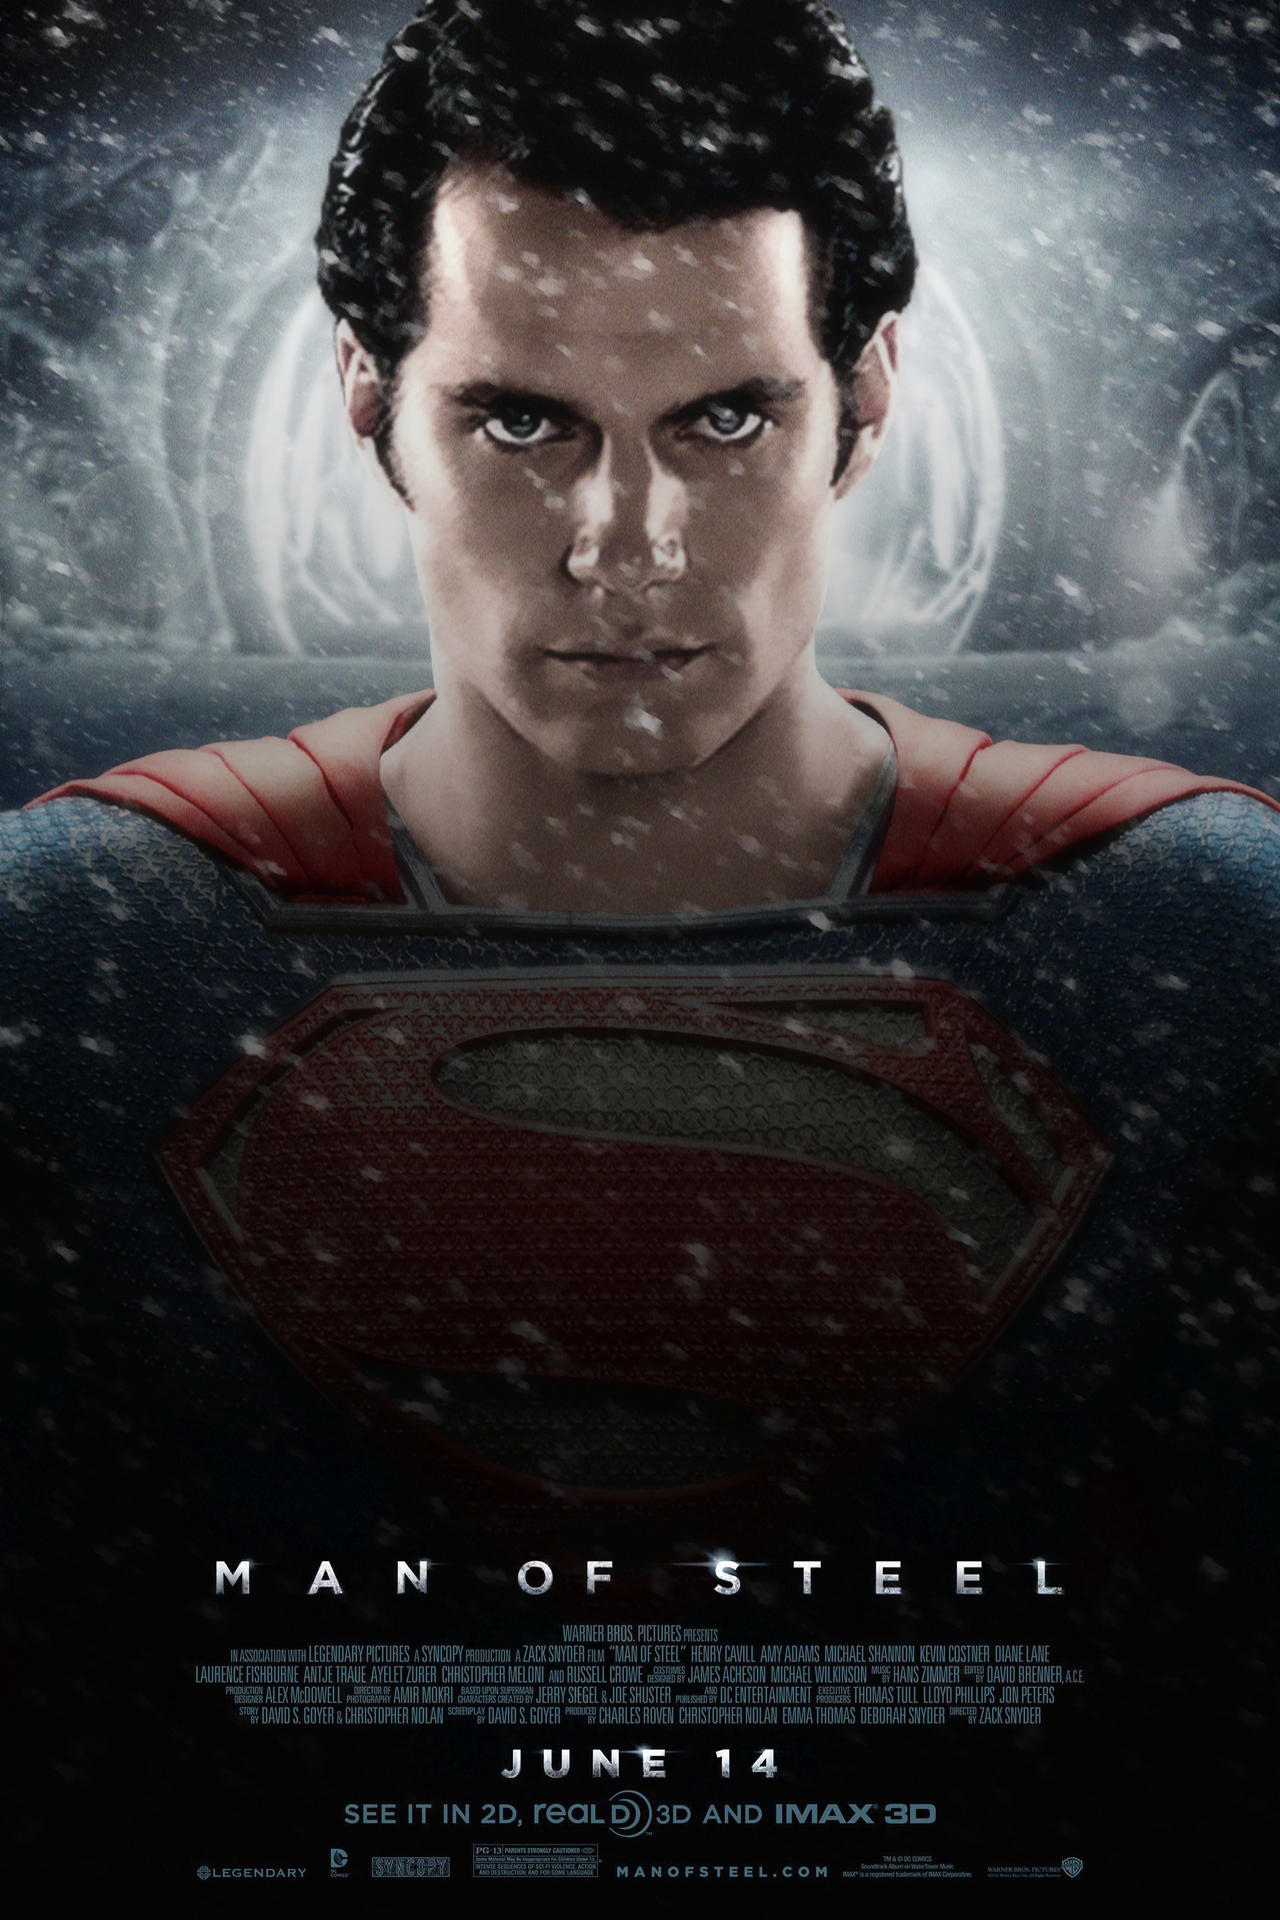 Man of Steel Poster #1 by MisterMerille on DeviantArt